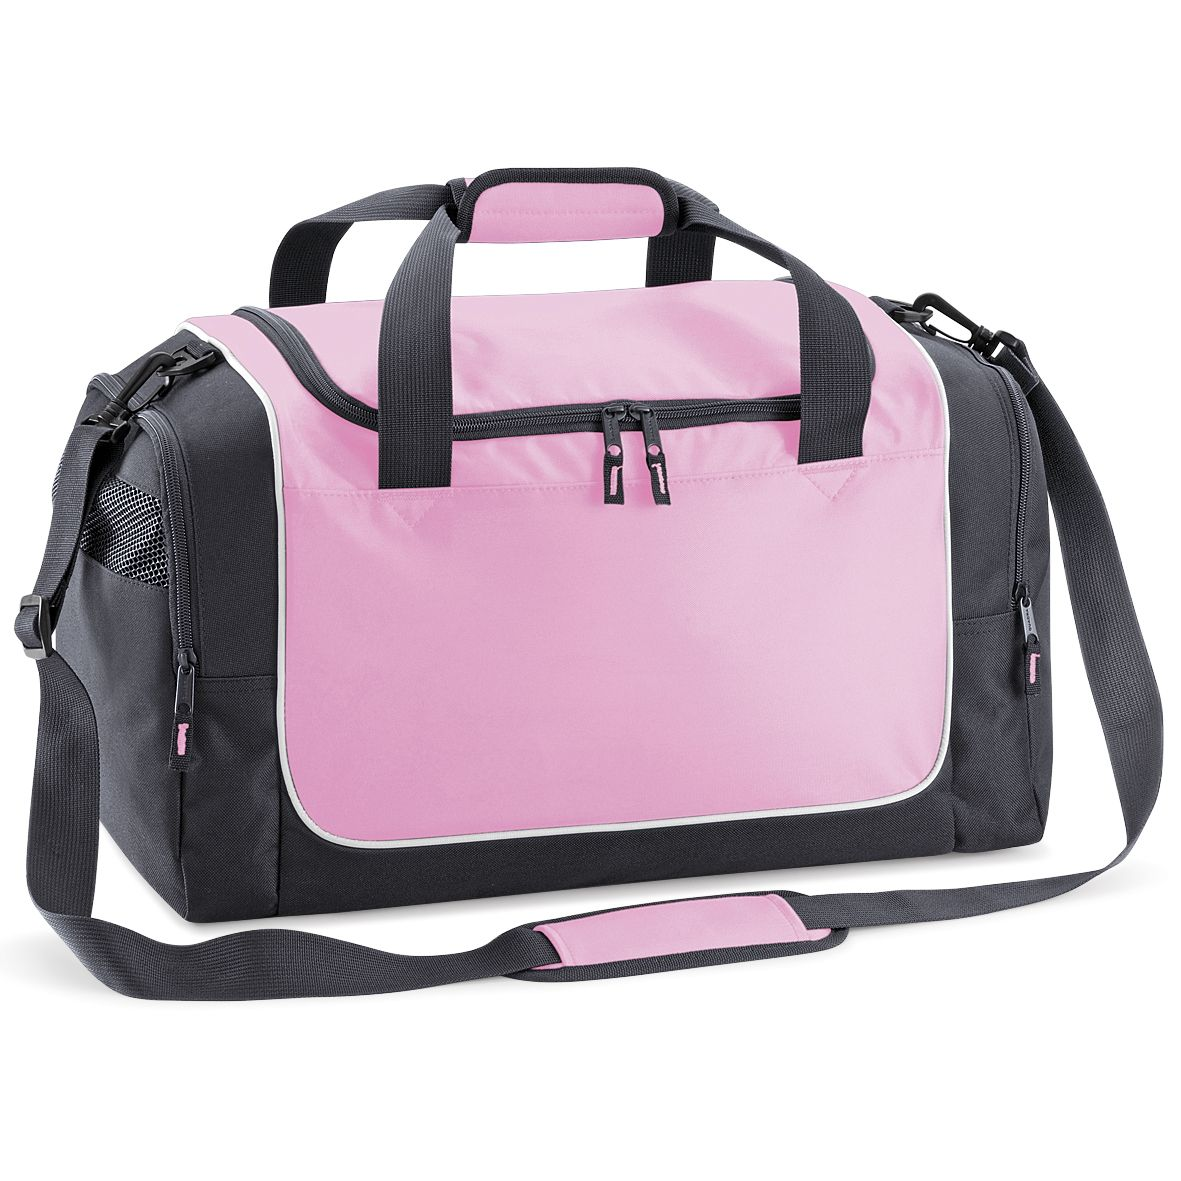 Bright Pink Sports Bag   ReGreen Springfield 4368518626